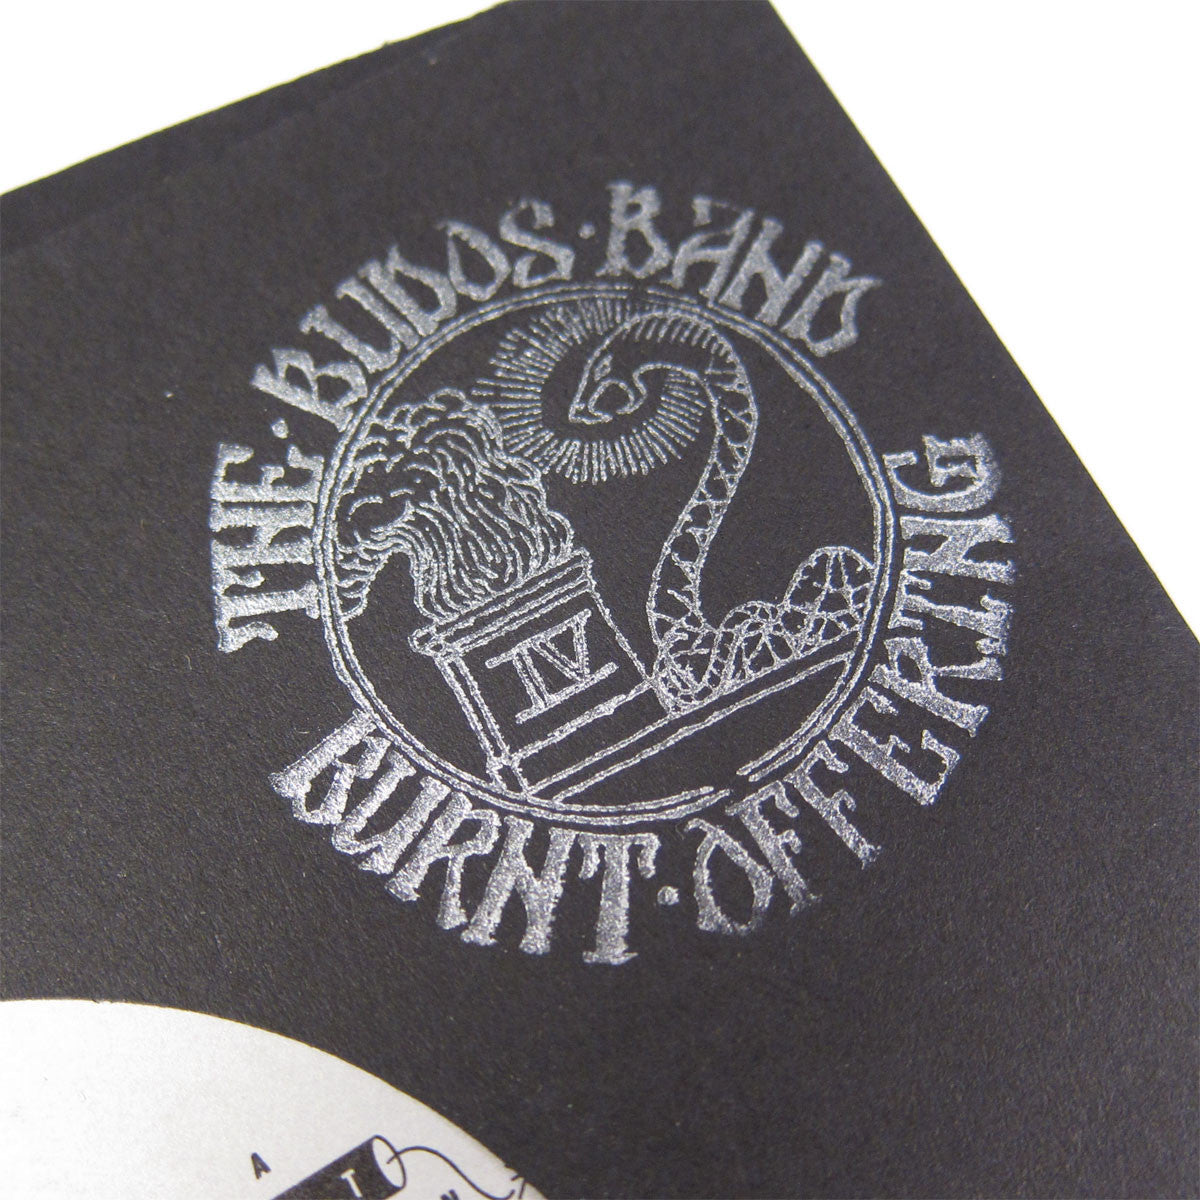 "Budos Band: Burnt Offering / Seizure Vinyl 7"" detail"